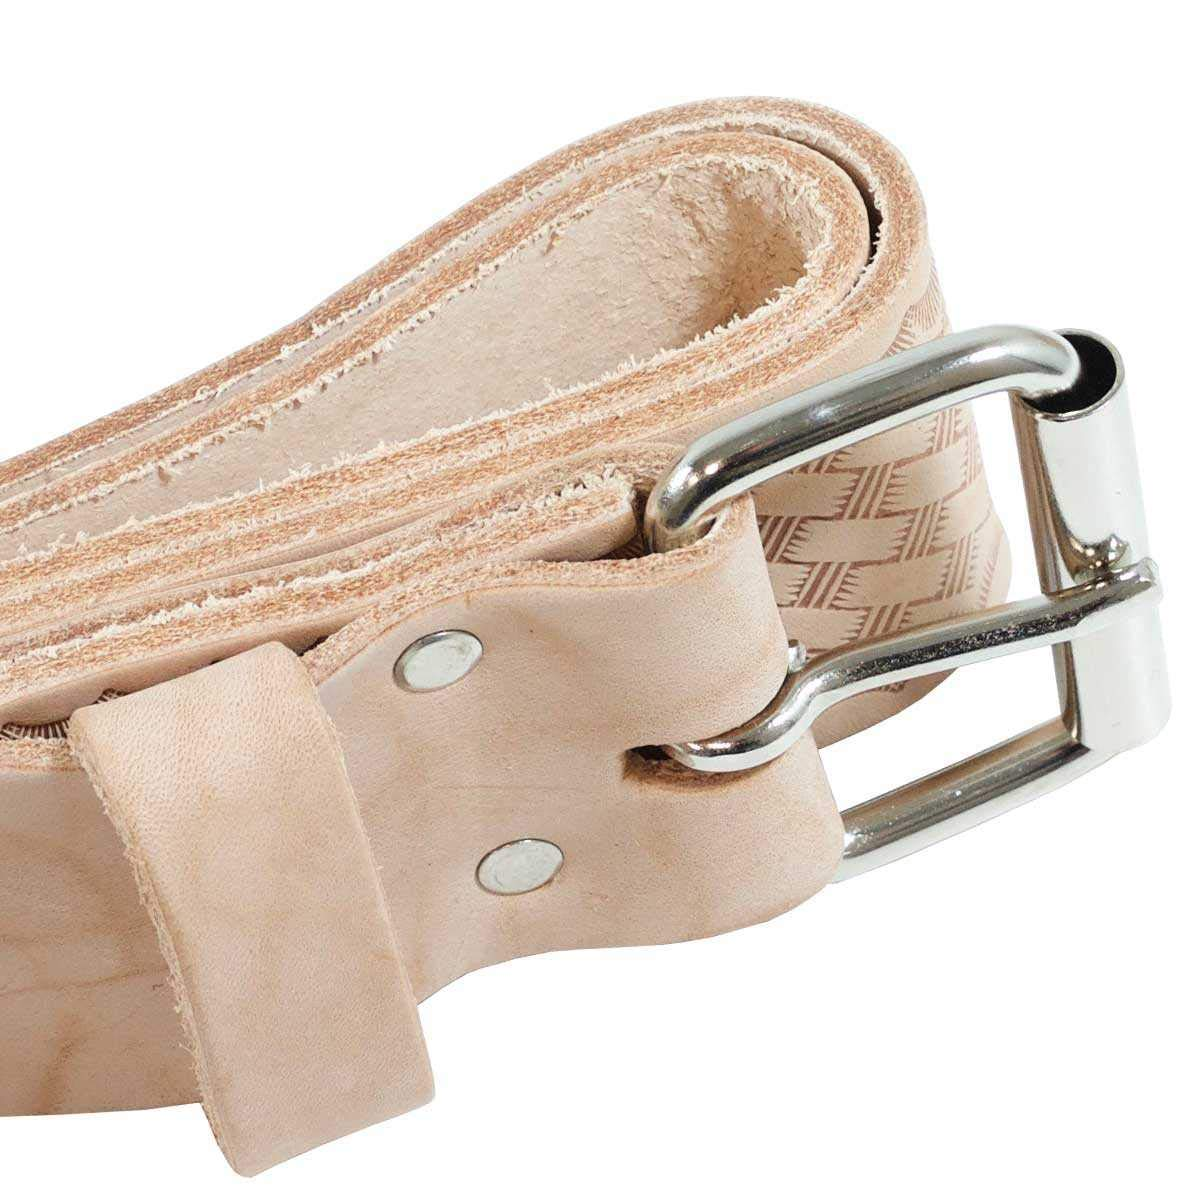 All-Wall 2'' Leather Work Belt - Ideal for Drywall and Construction Tool Pouches